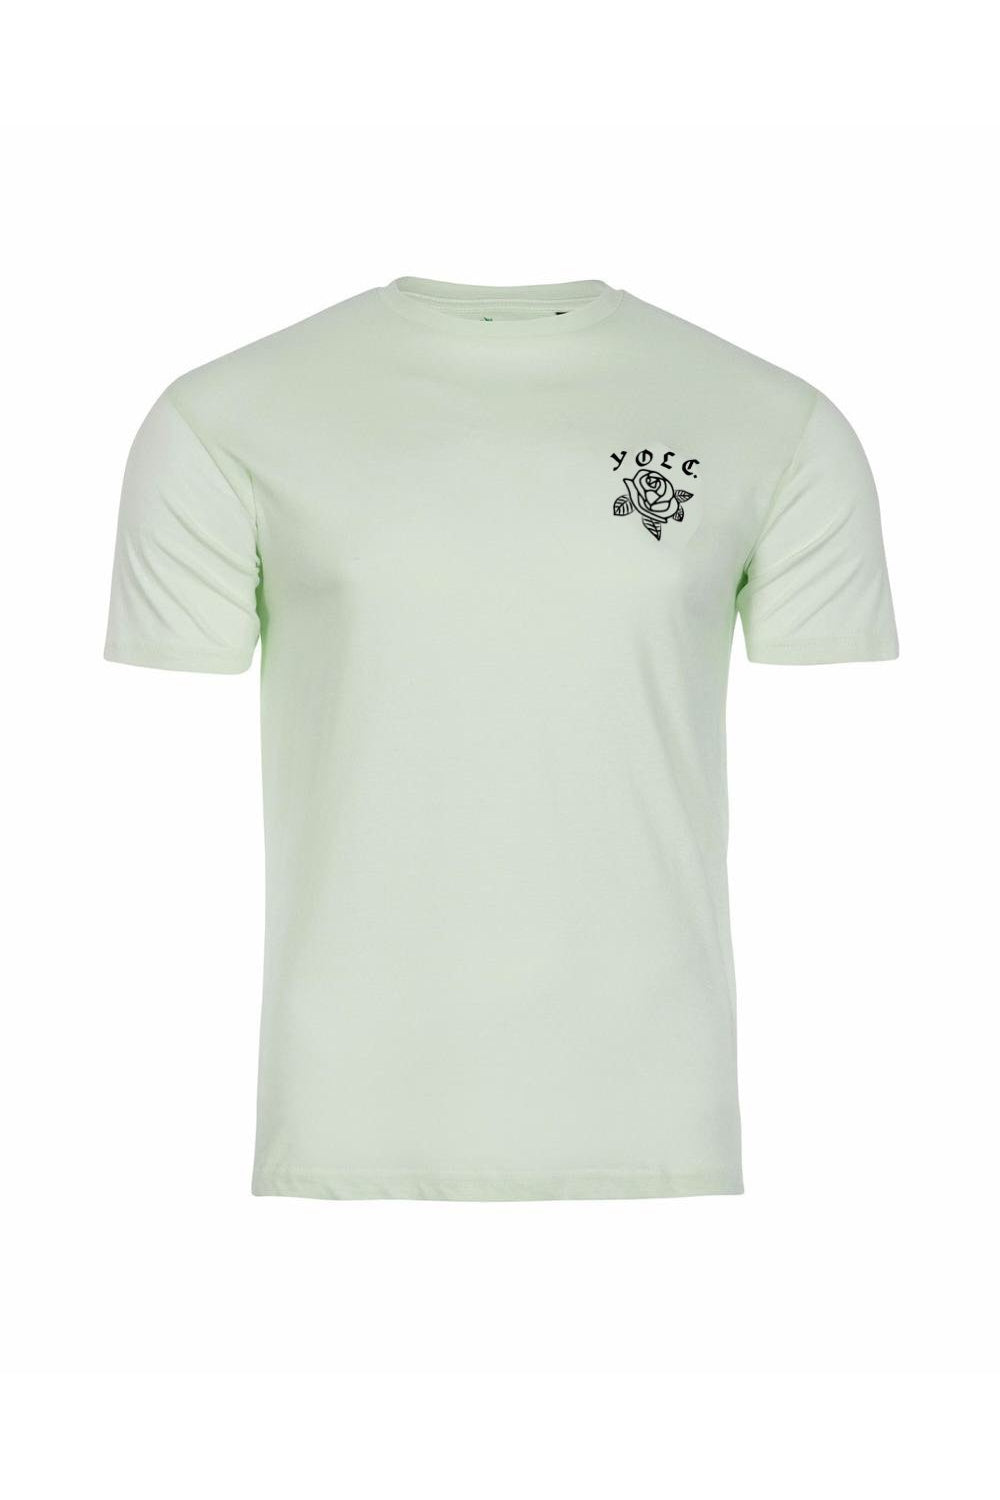 T-Shirts - Rose T-Shirt Mint